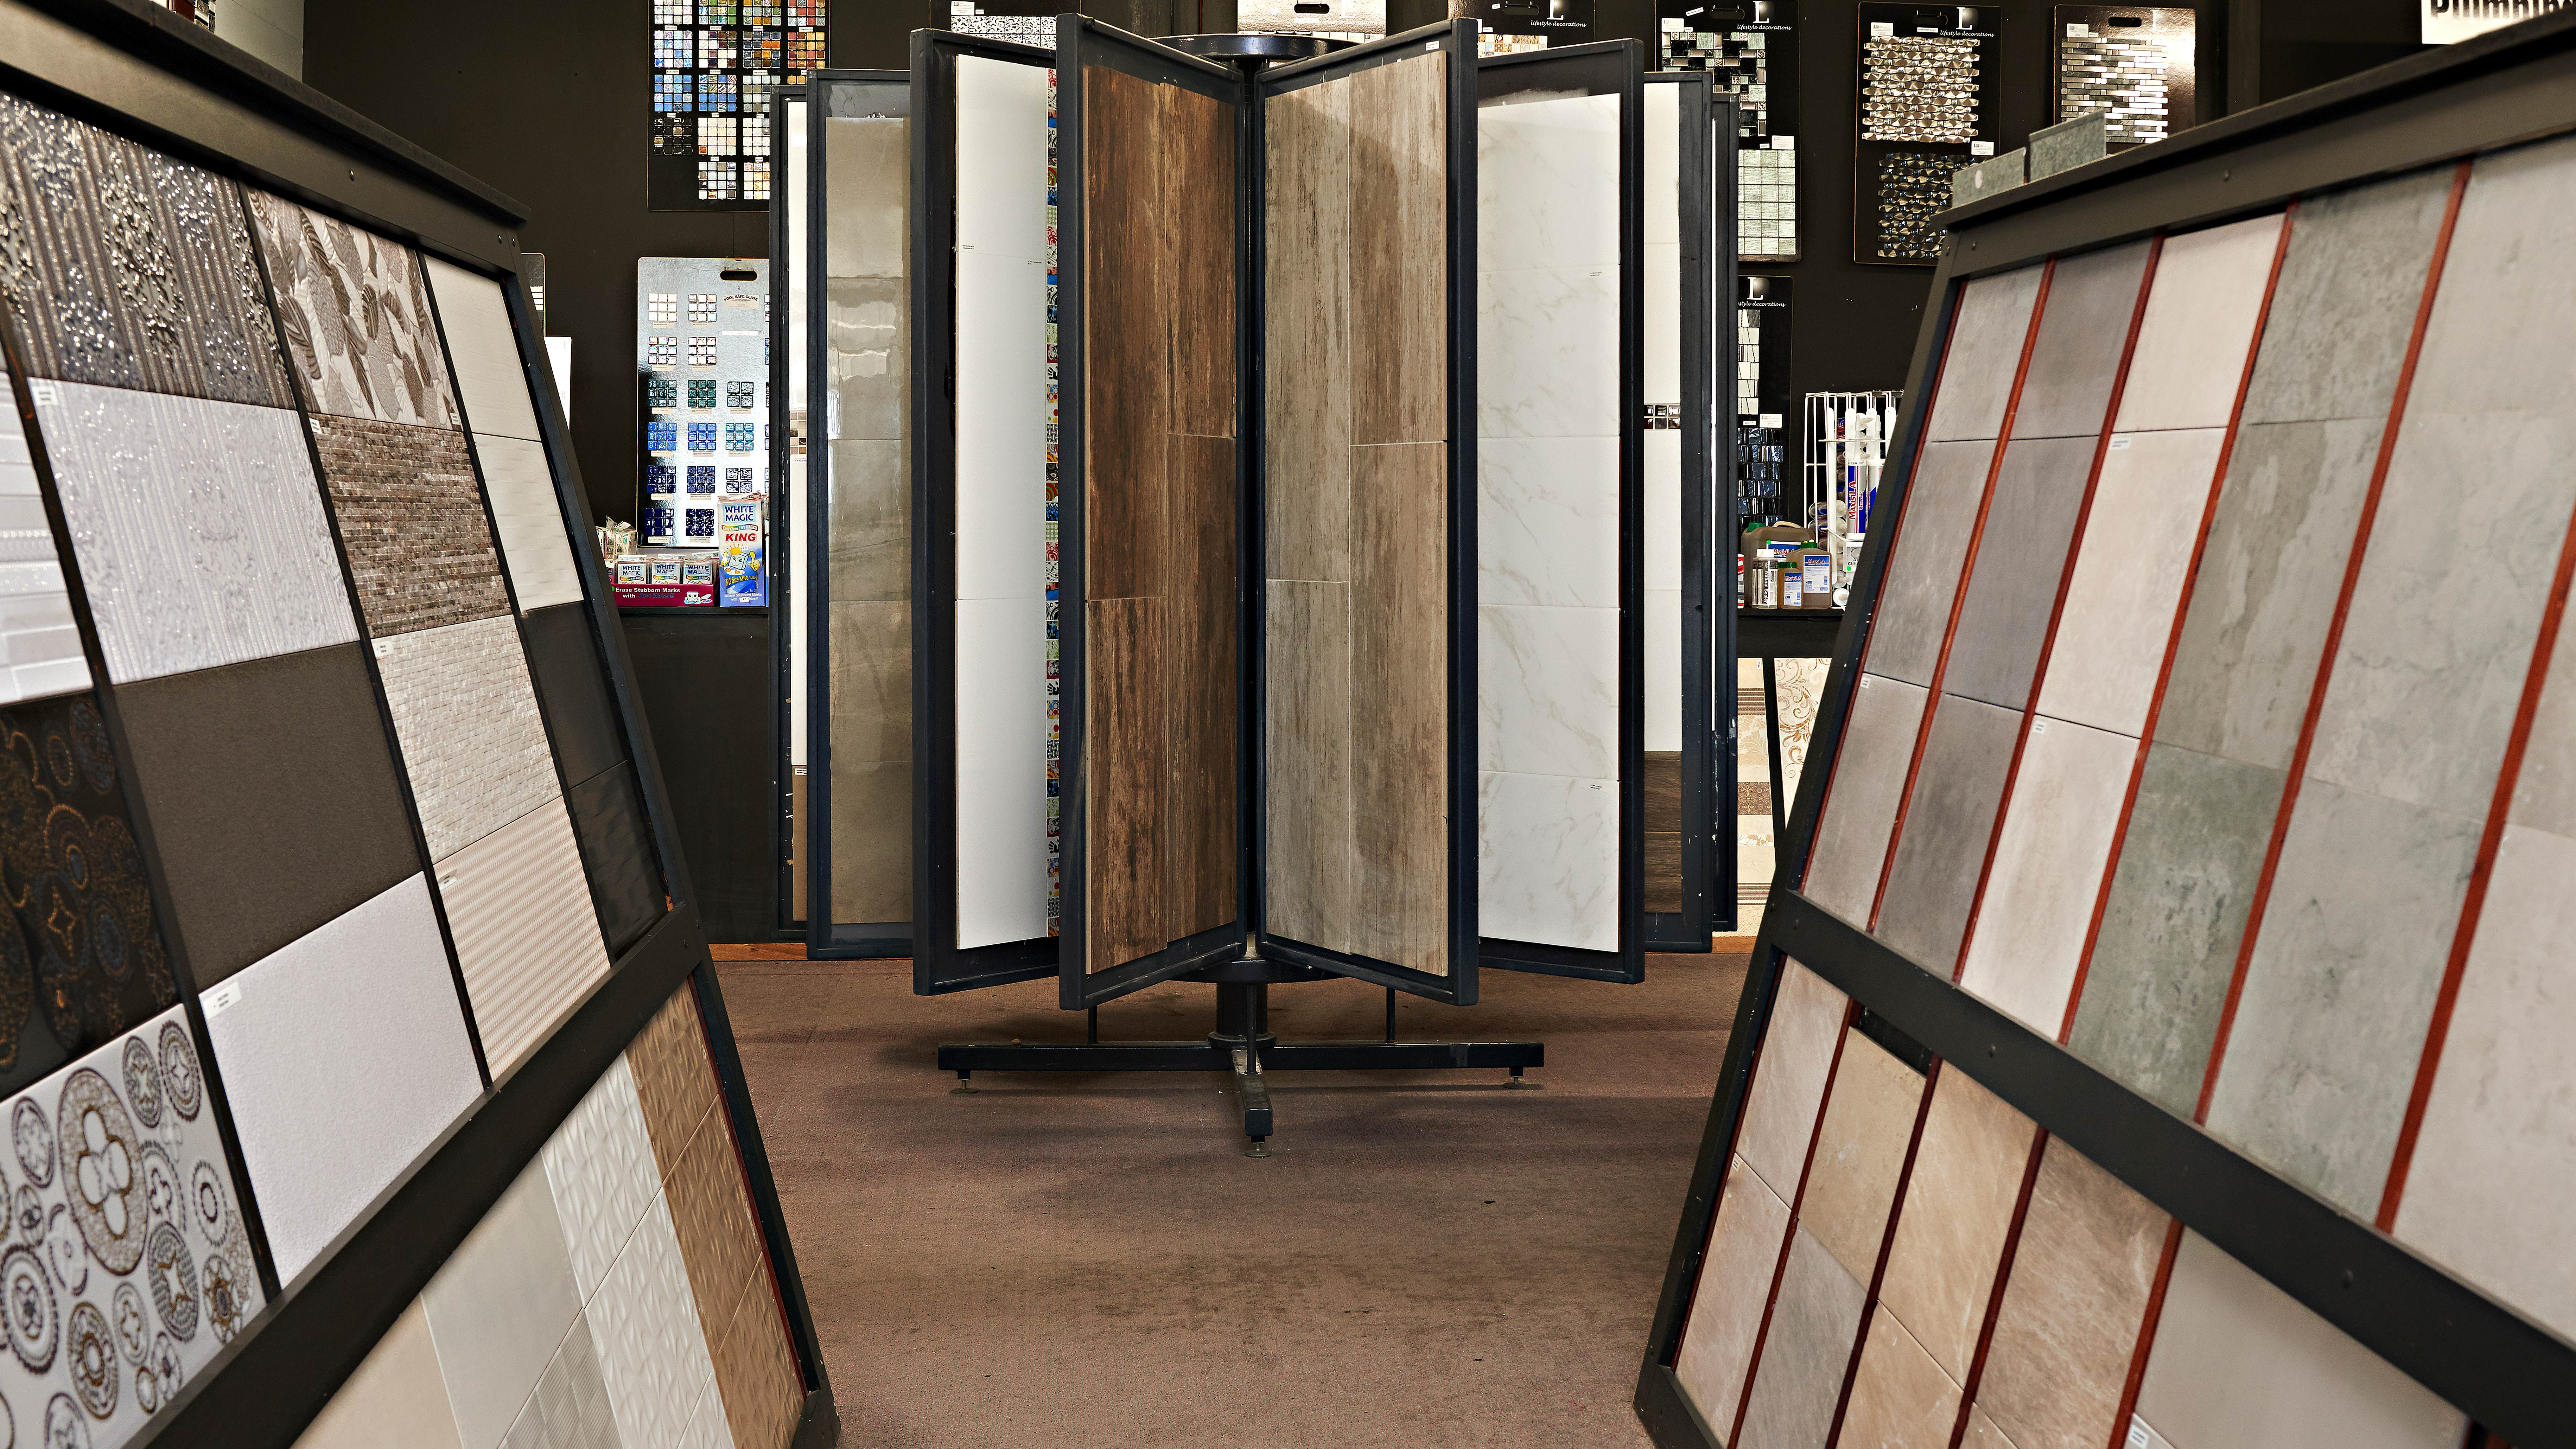 Floor & Wall Tiles at Bathroom Decor & Tiles Albany